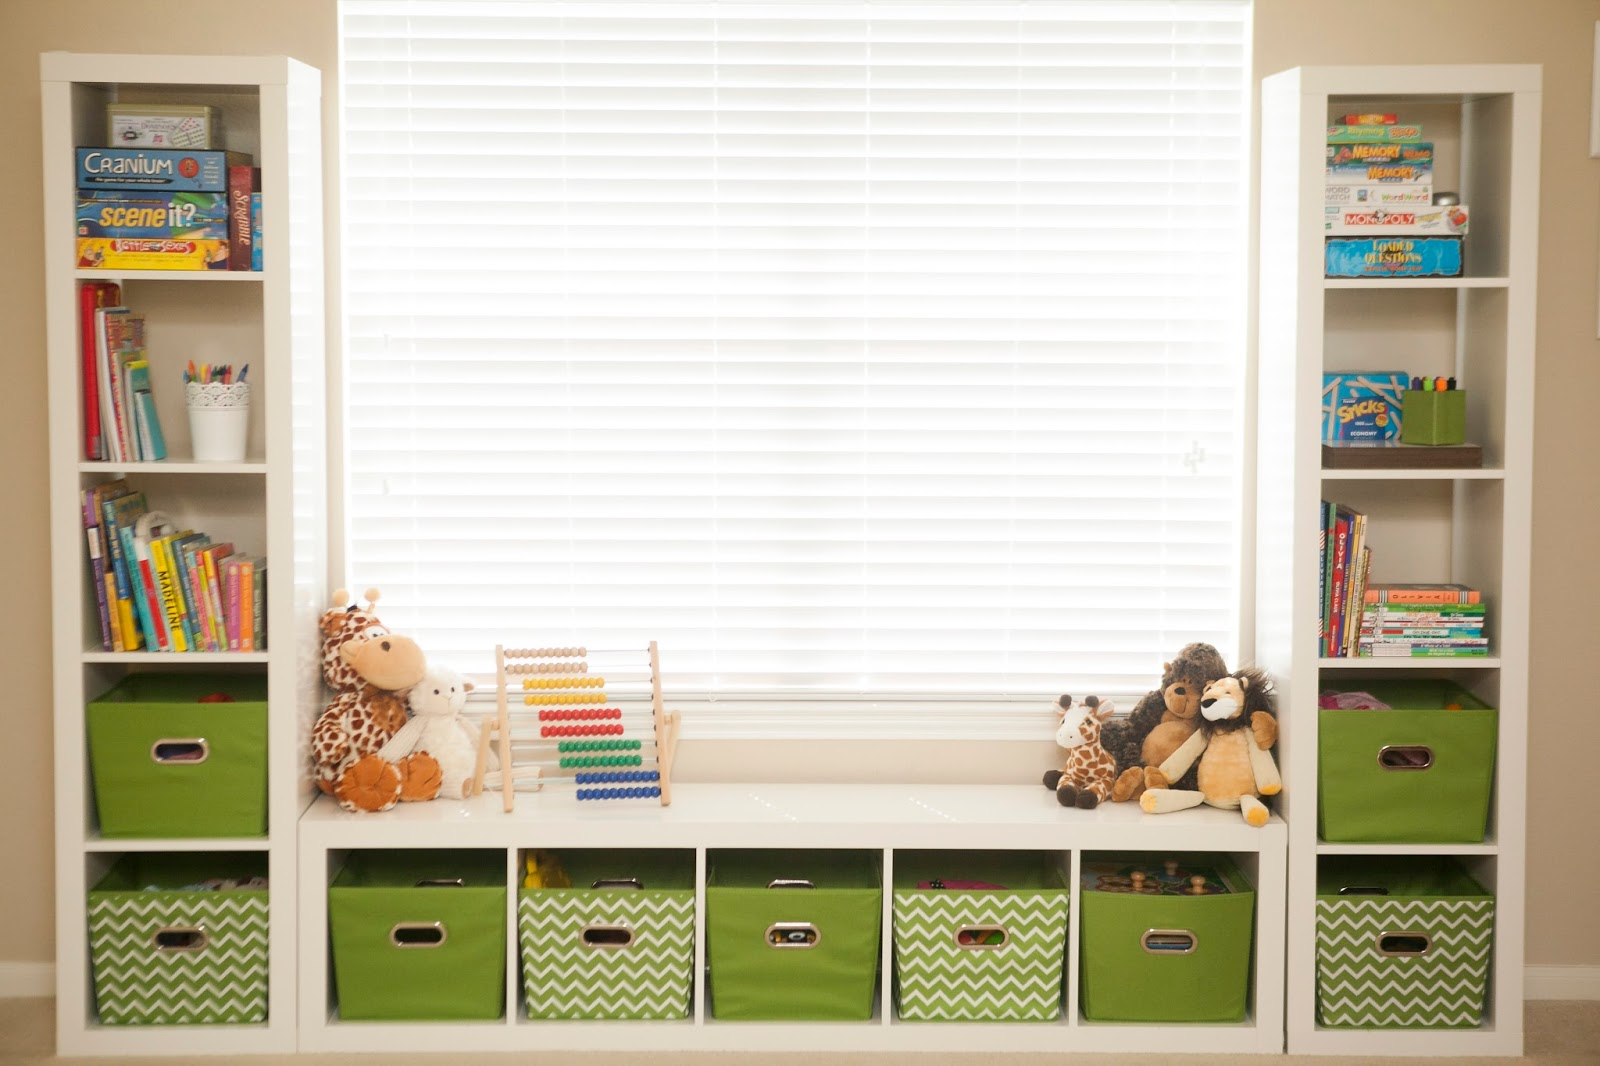 ikea toy storage in white and green nuance with dolls above with window